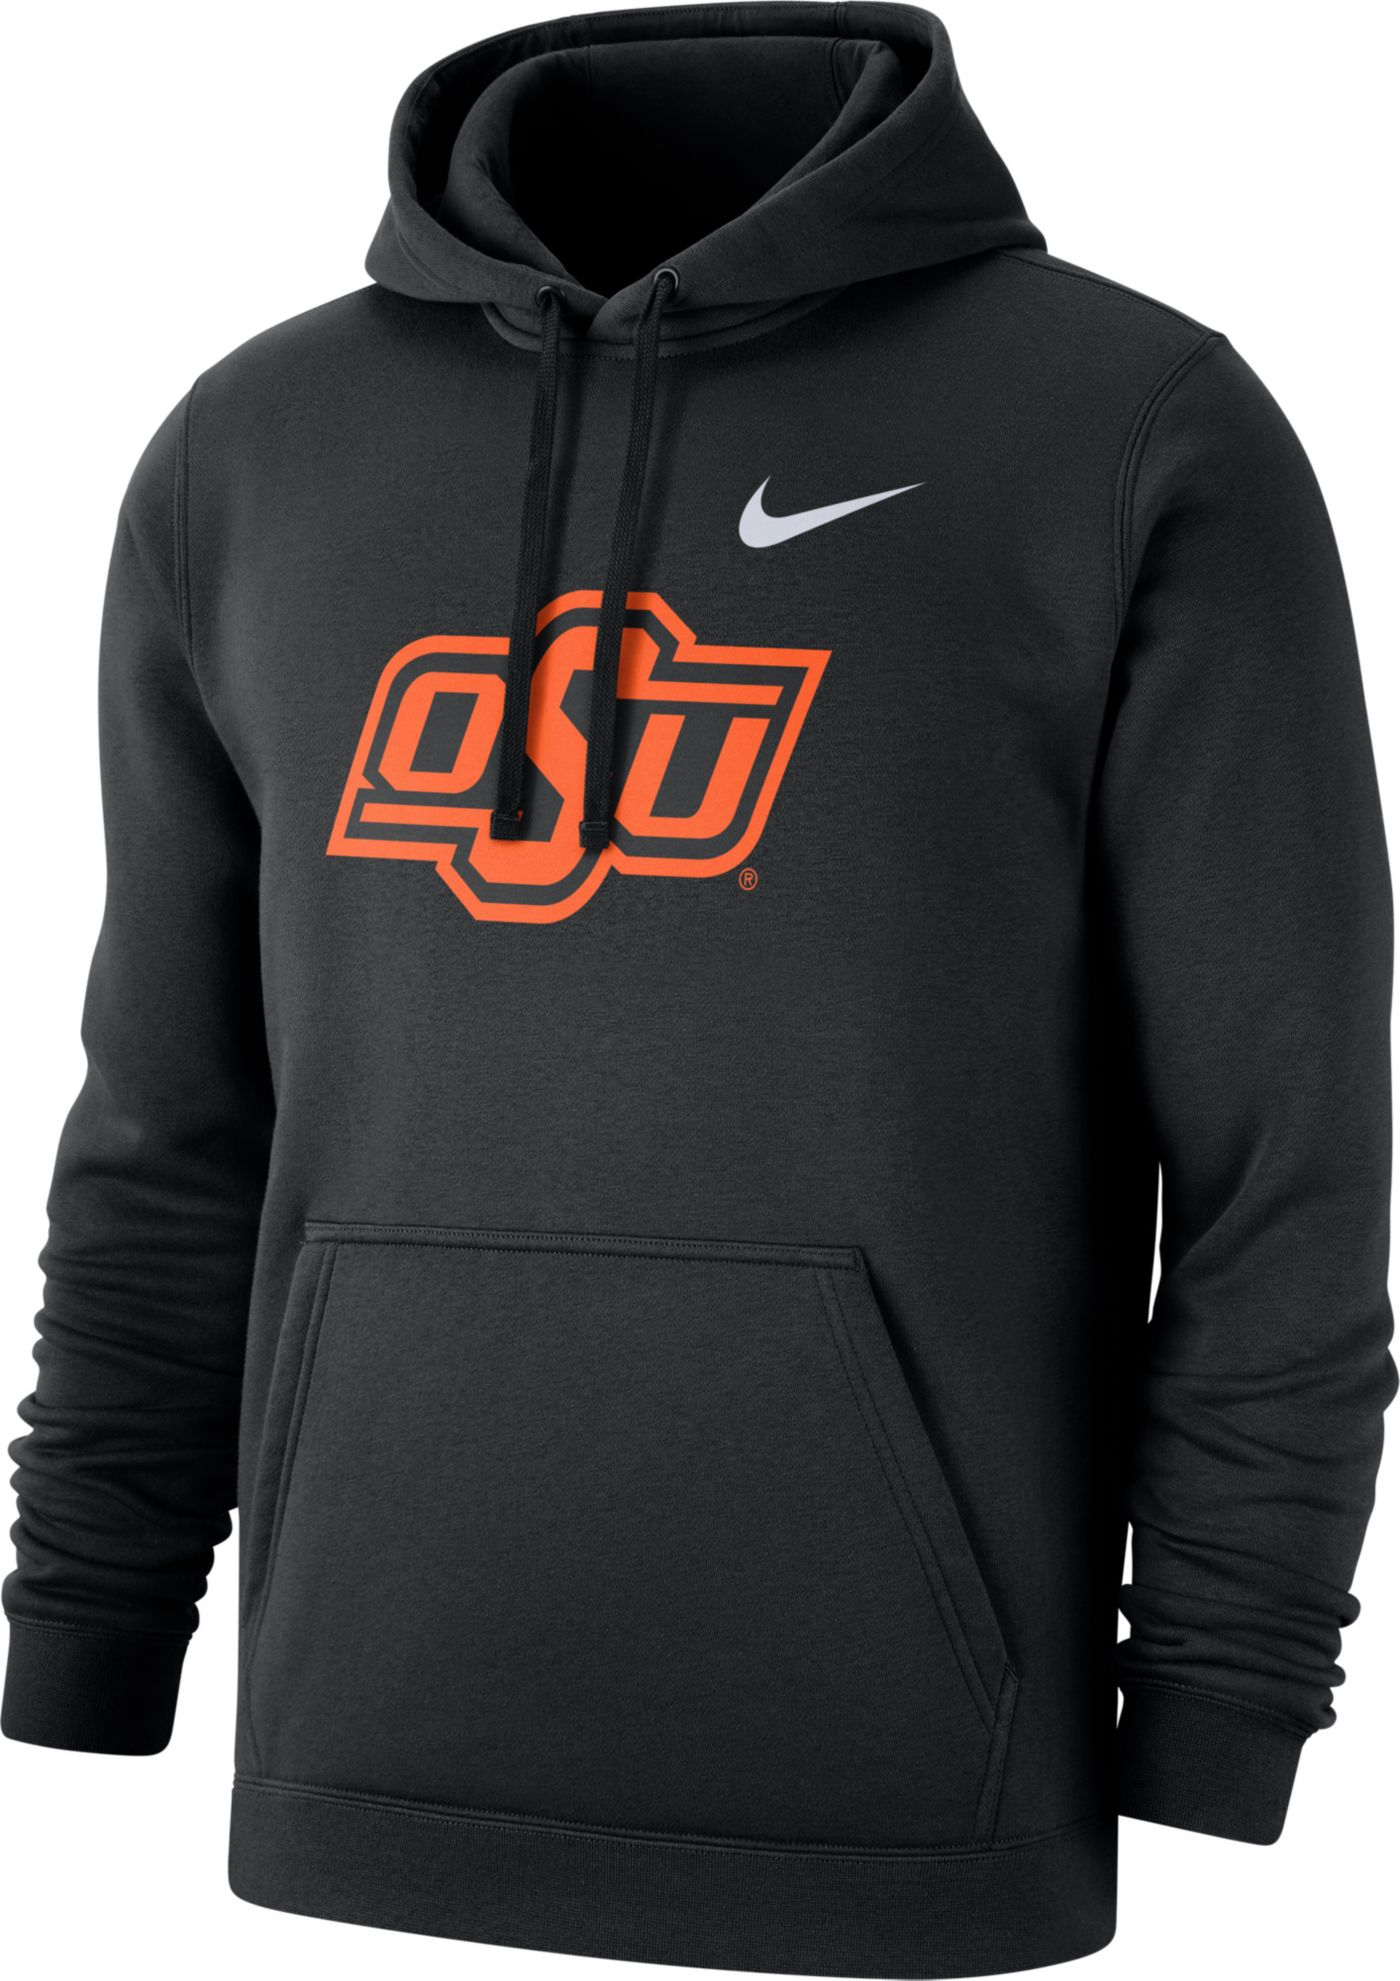 Nike Men's Oklahoma State Cowboys Club Fleece Pullover Black Hoodie